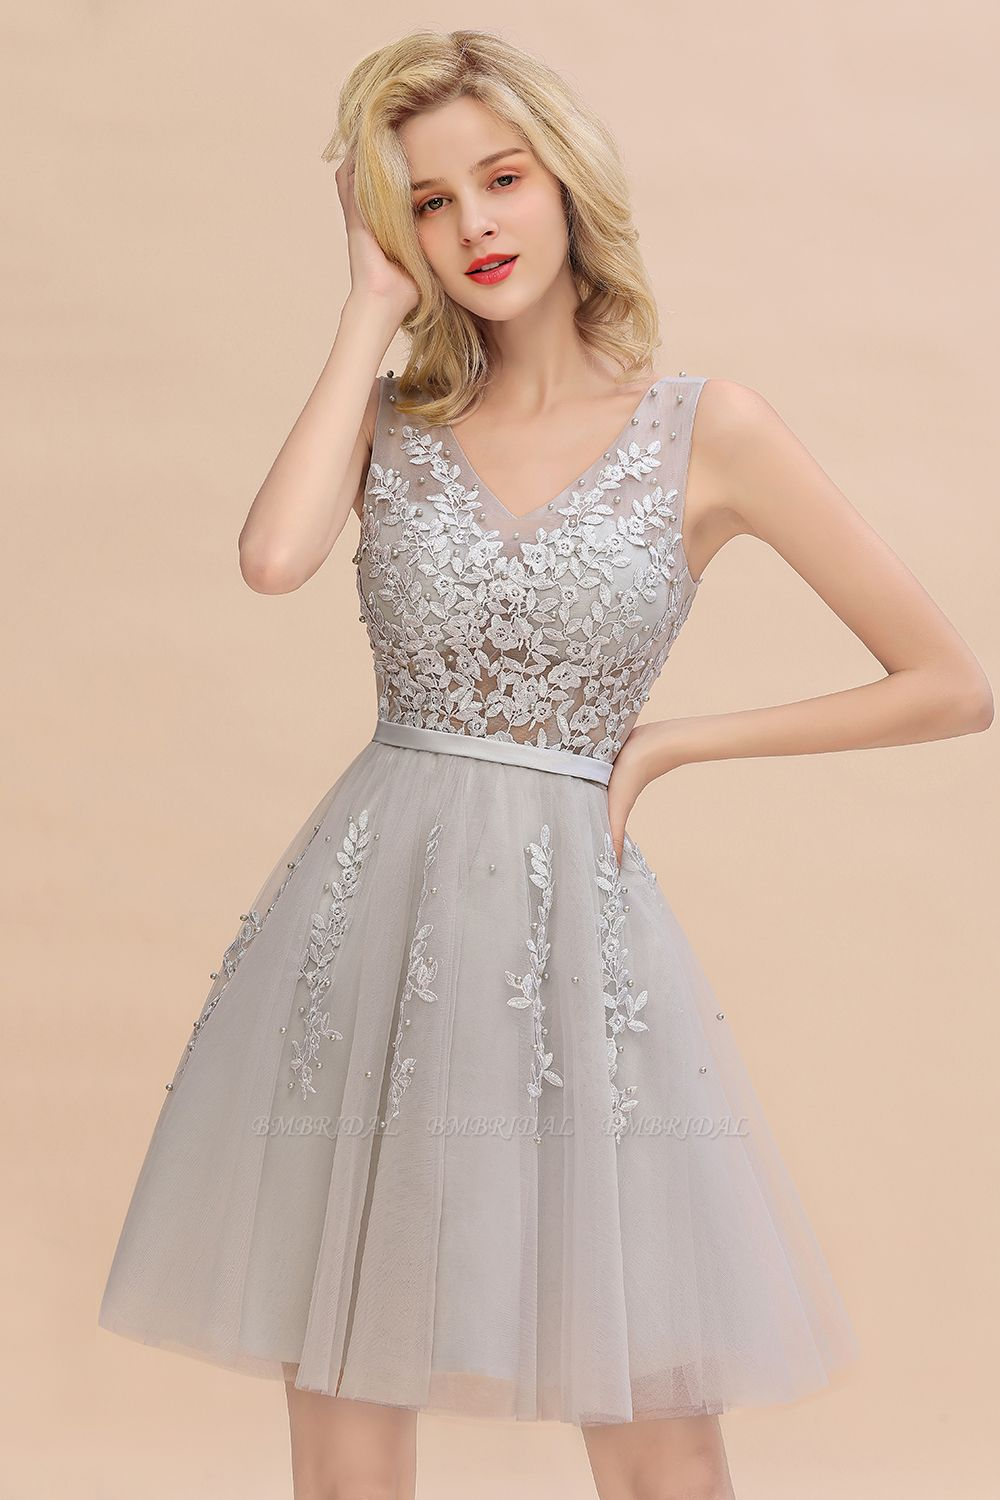 BMbridal Elegant V-Neck Sleeveless Short Prom Dress Mini Homecoming Dress With Lace Appliques